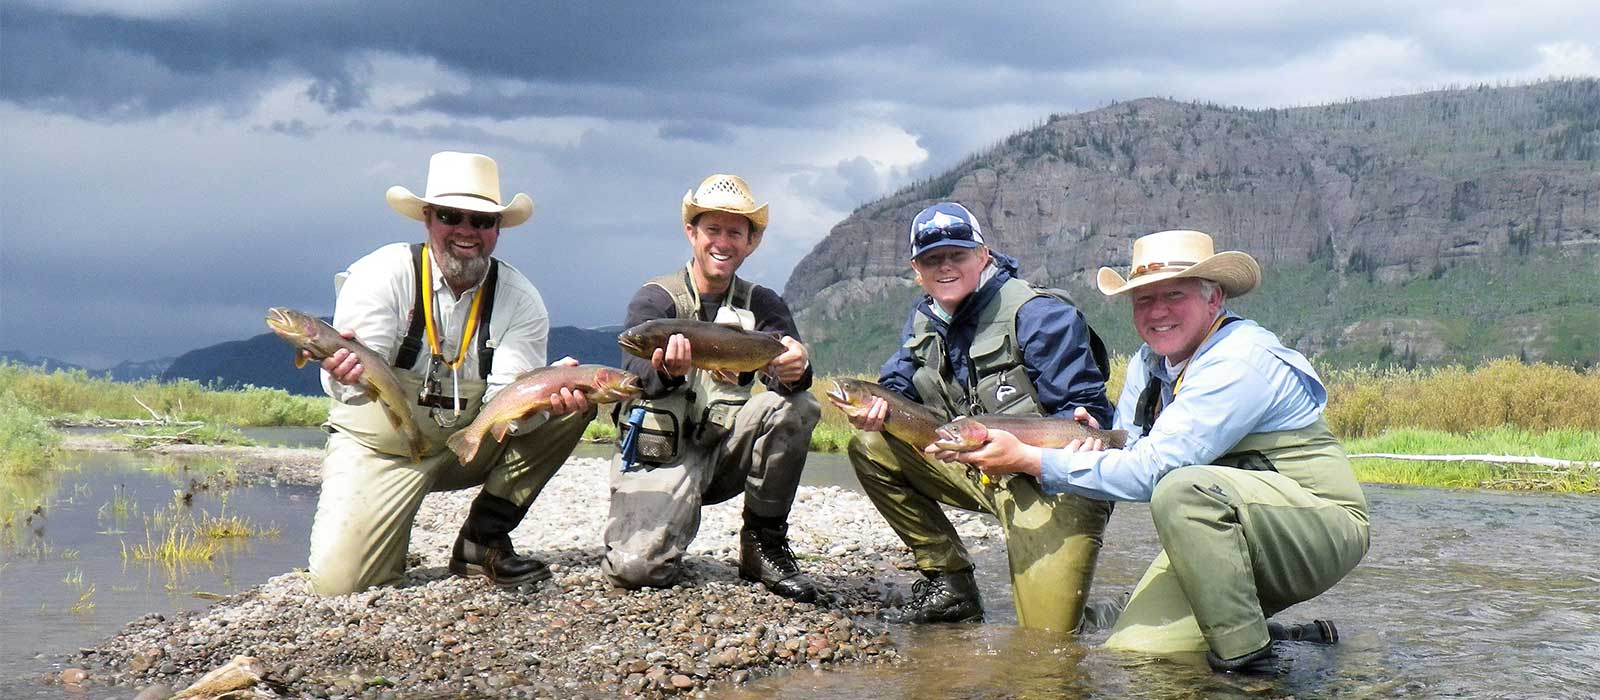 Teton pack trips wilderness fly fishing trips for Fly fishing trips